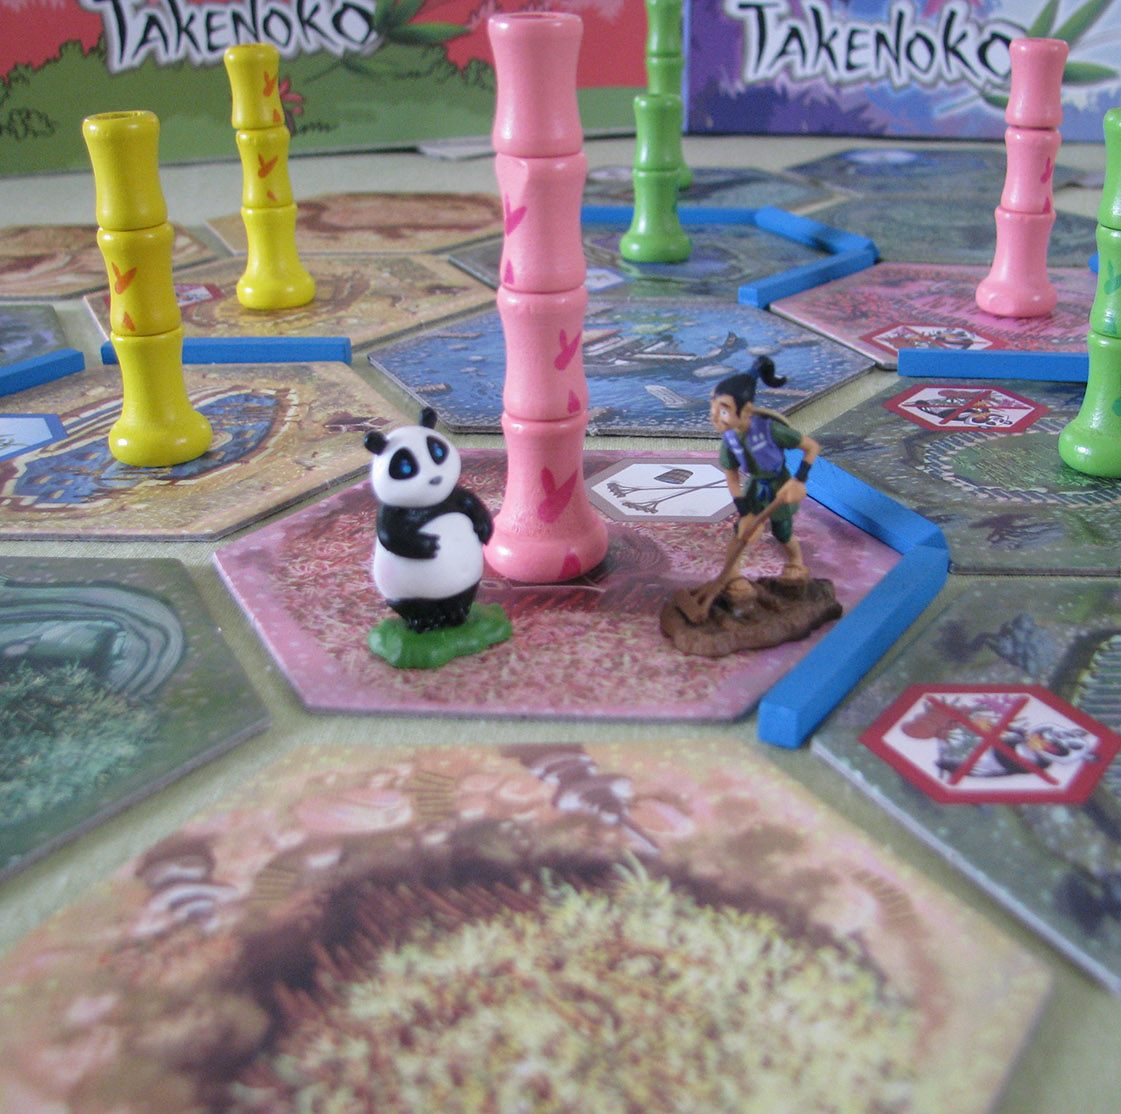 takenoko board game take care of a bamboo garden to keep a panda